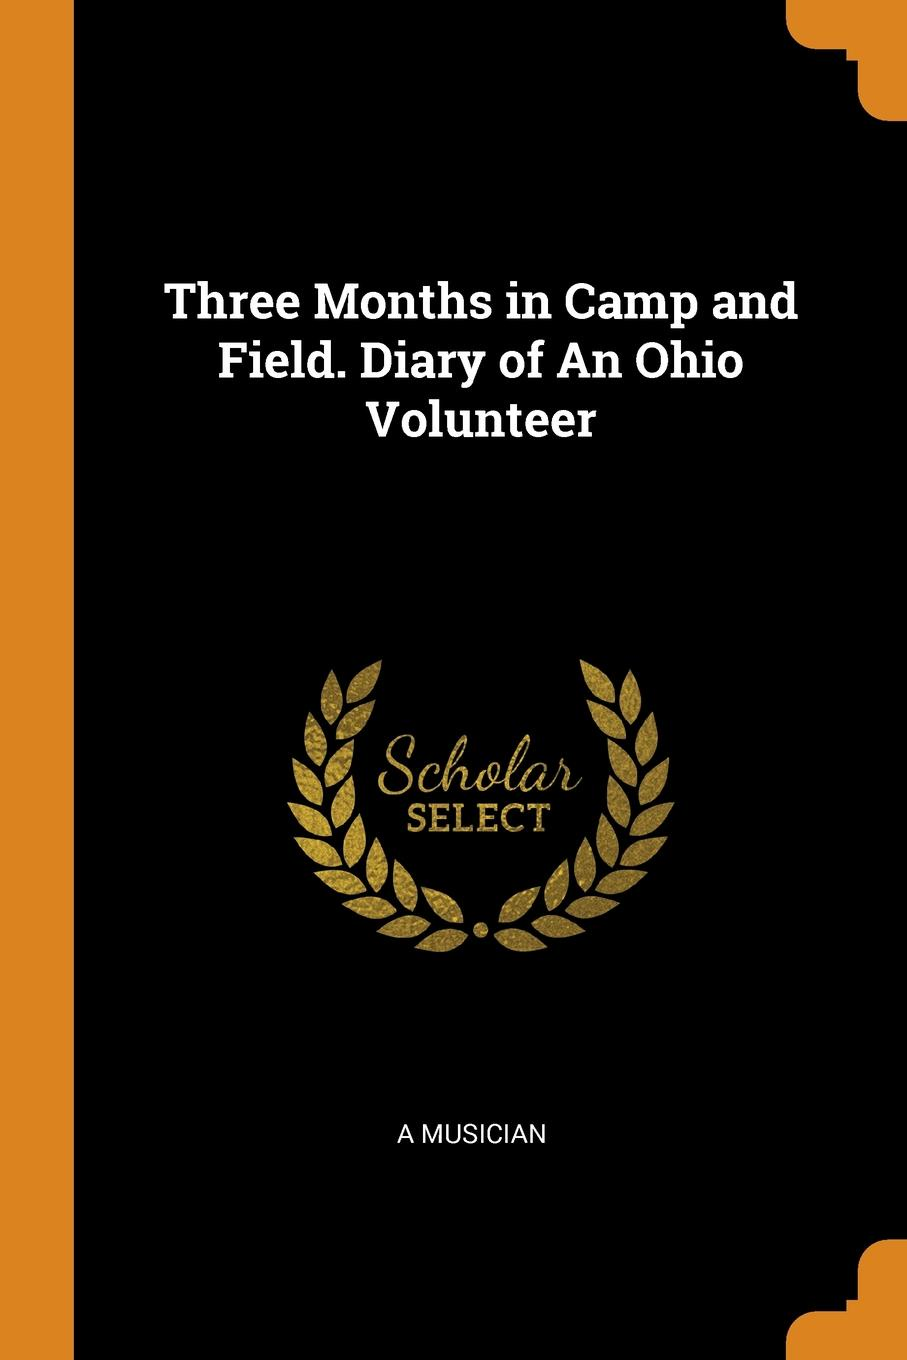 Three Months in Camp and Field. Diary of An Ohio Volunteer